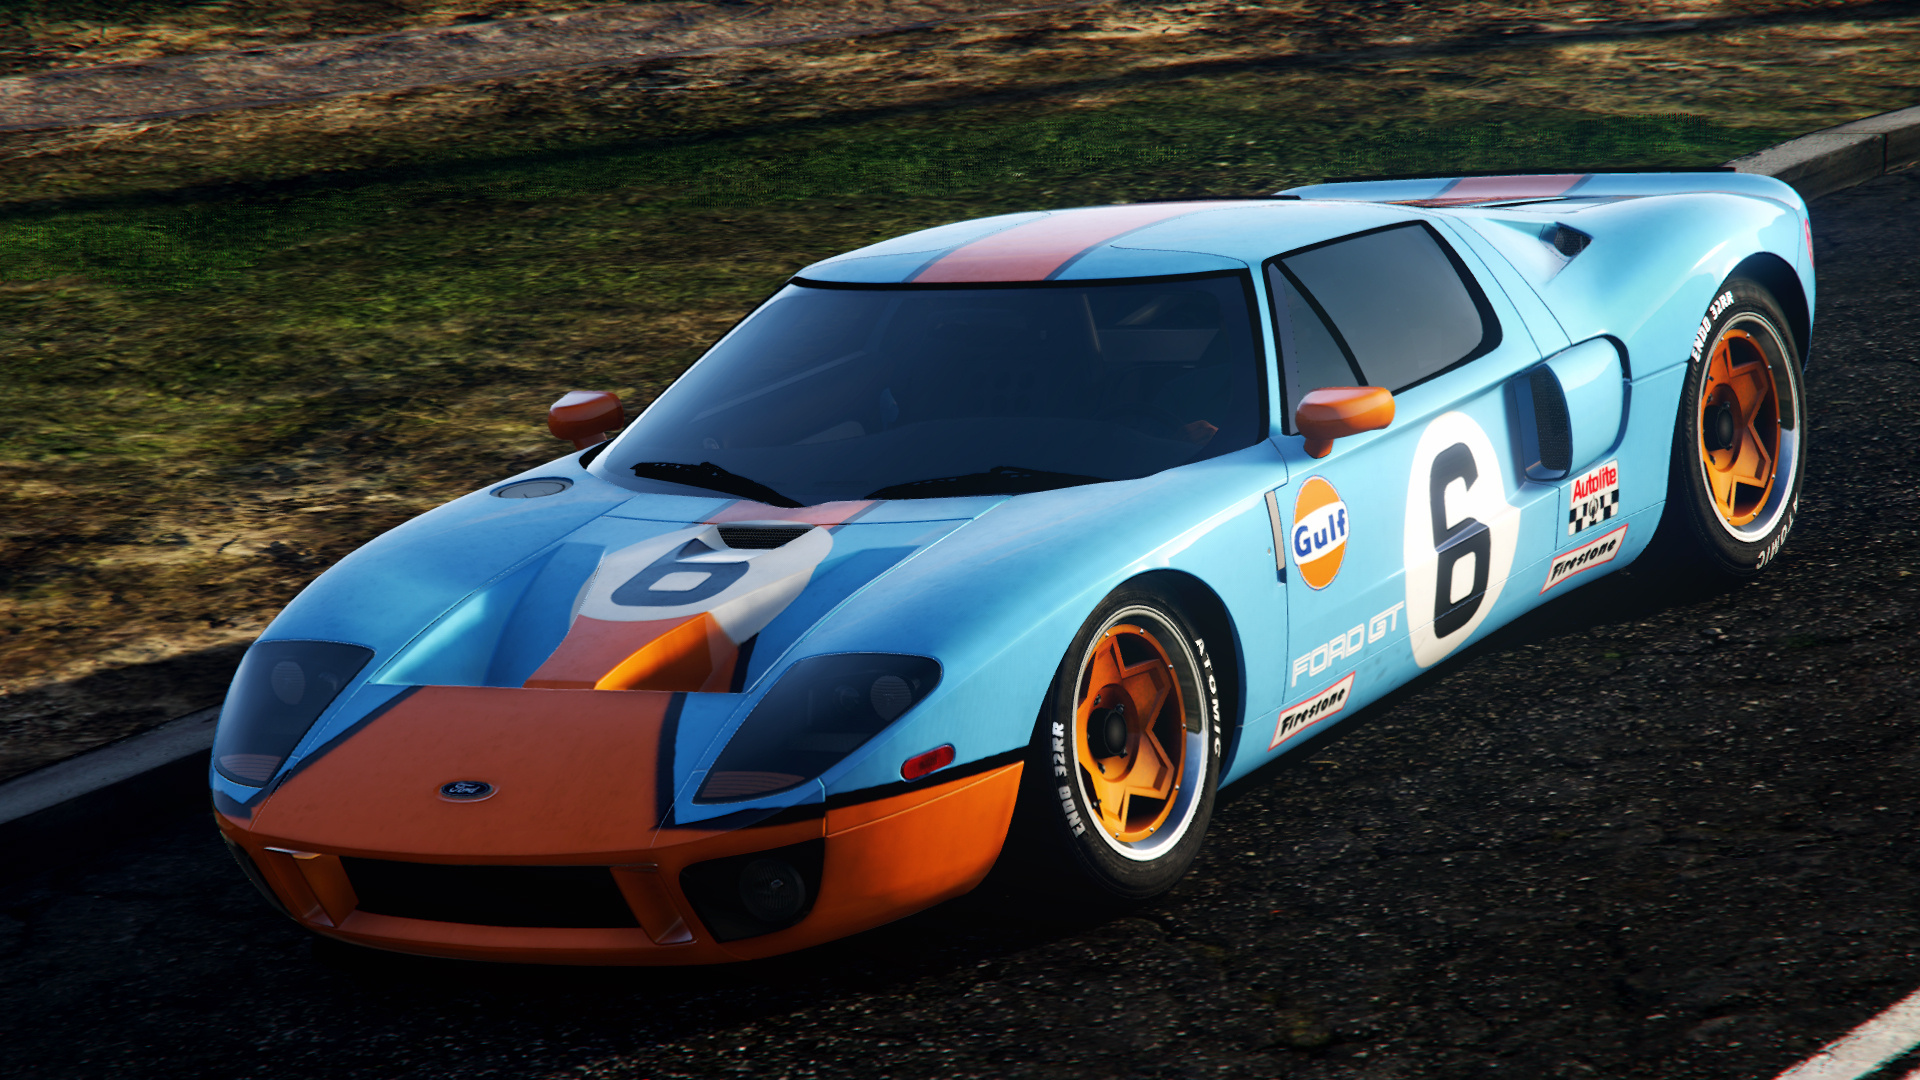 Ford Gt  Gulf Paintjob  Colors For Original Livery